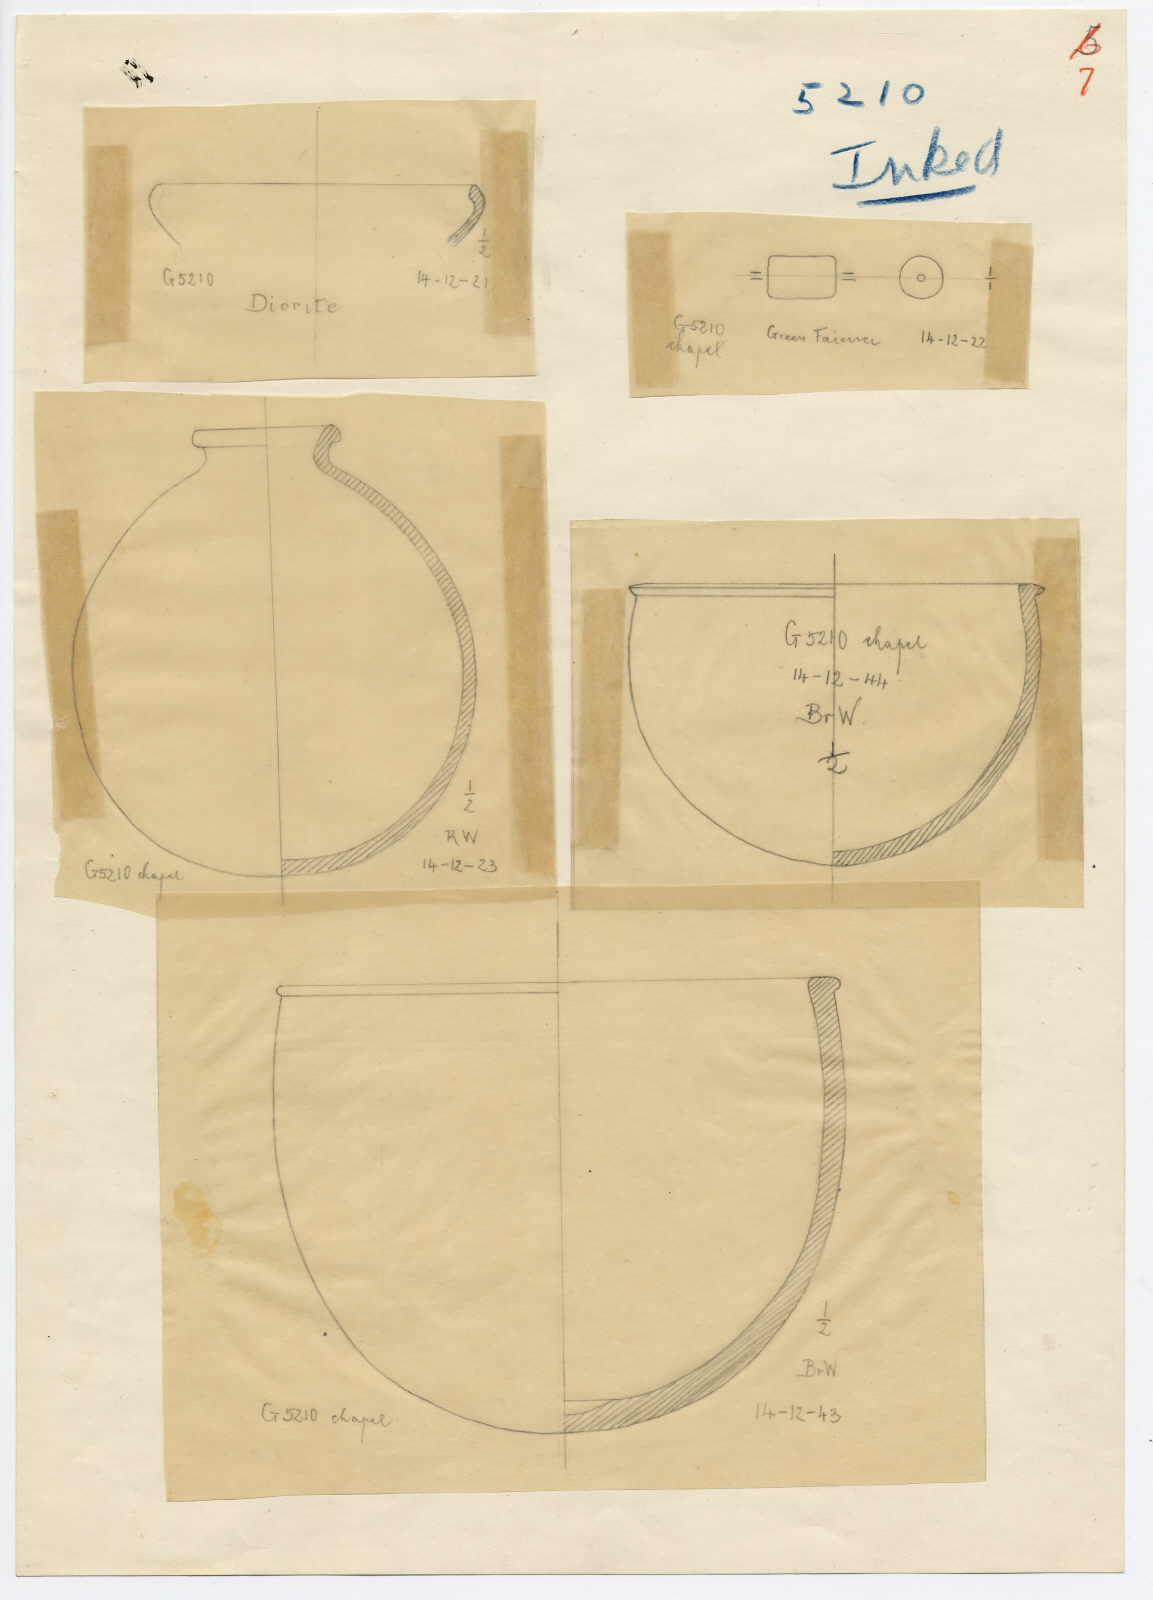 Drawings: G 5210: objects